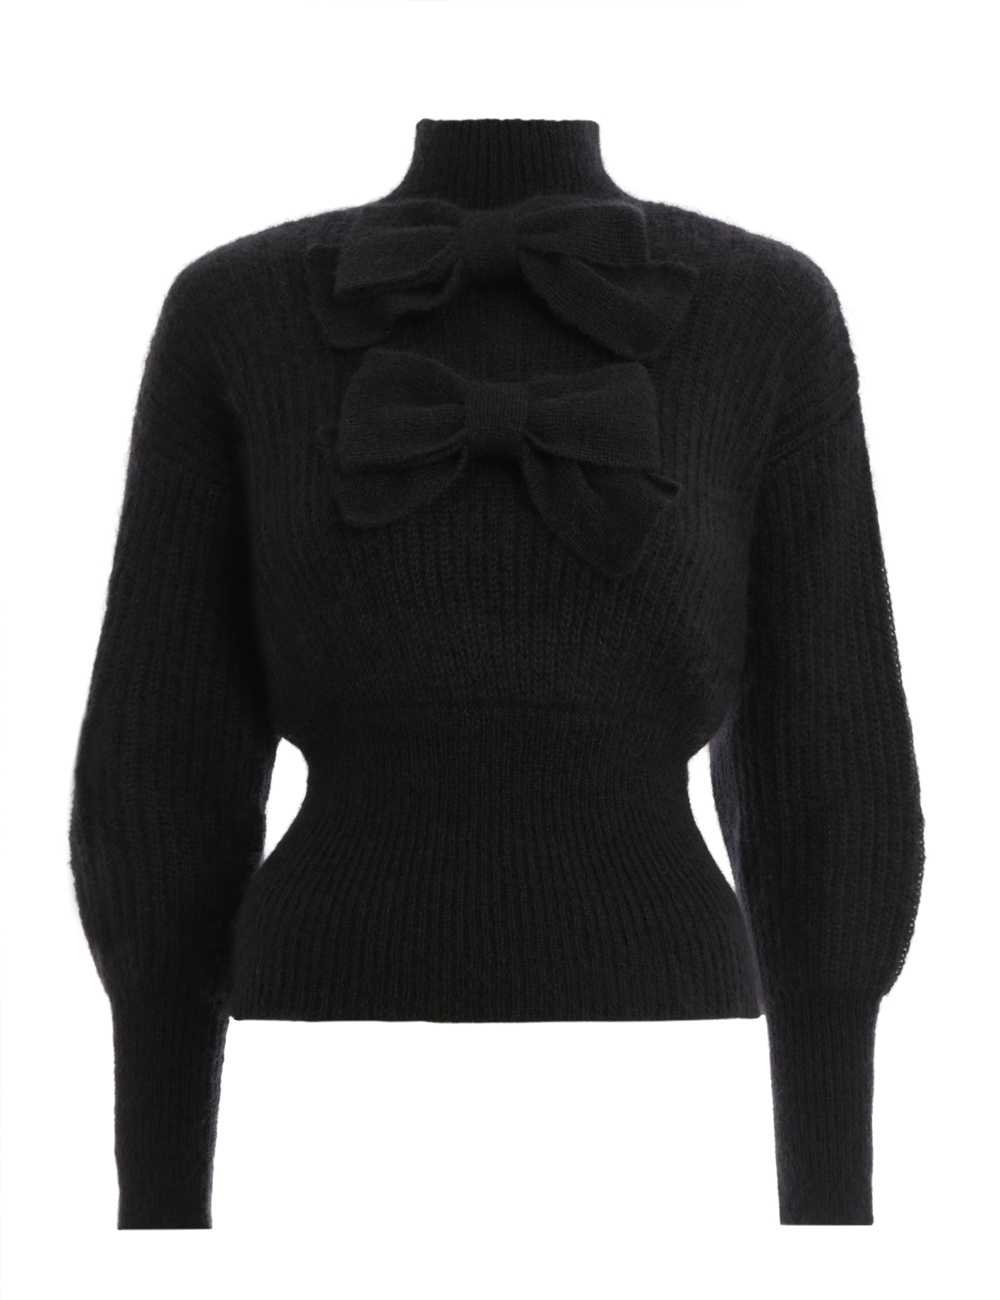 Resistance Batwing Bow Sweater